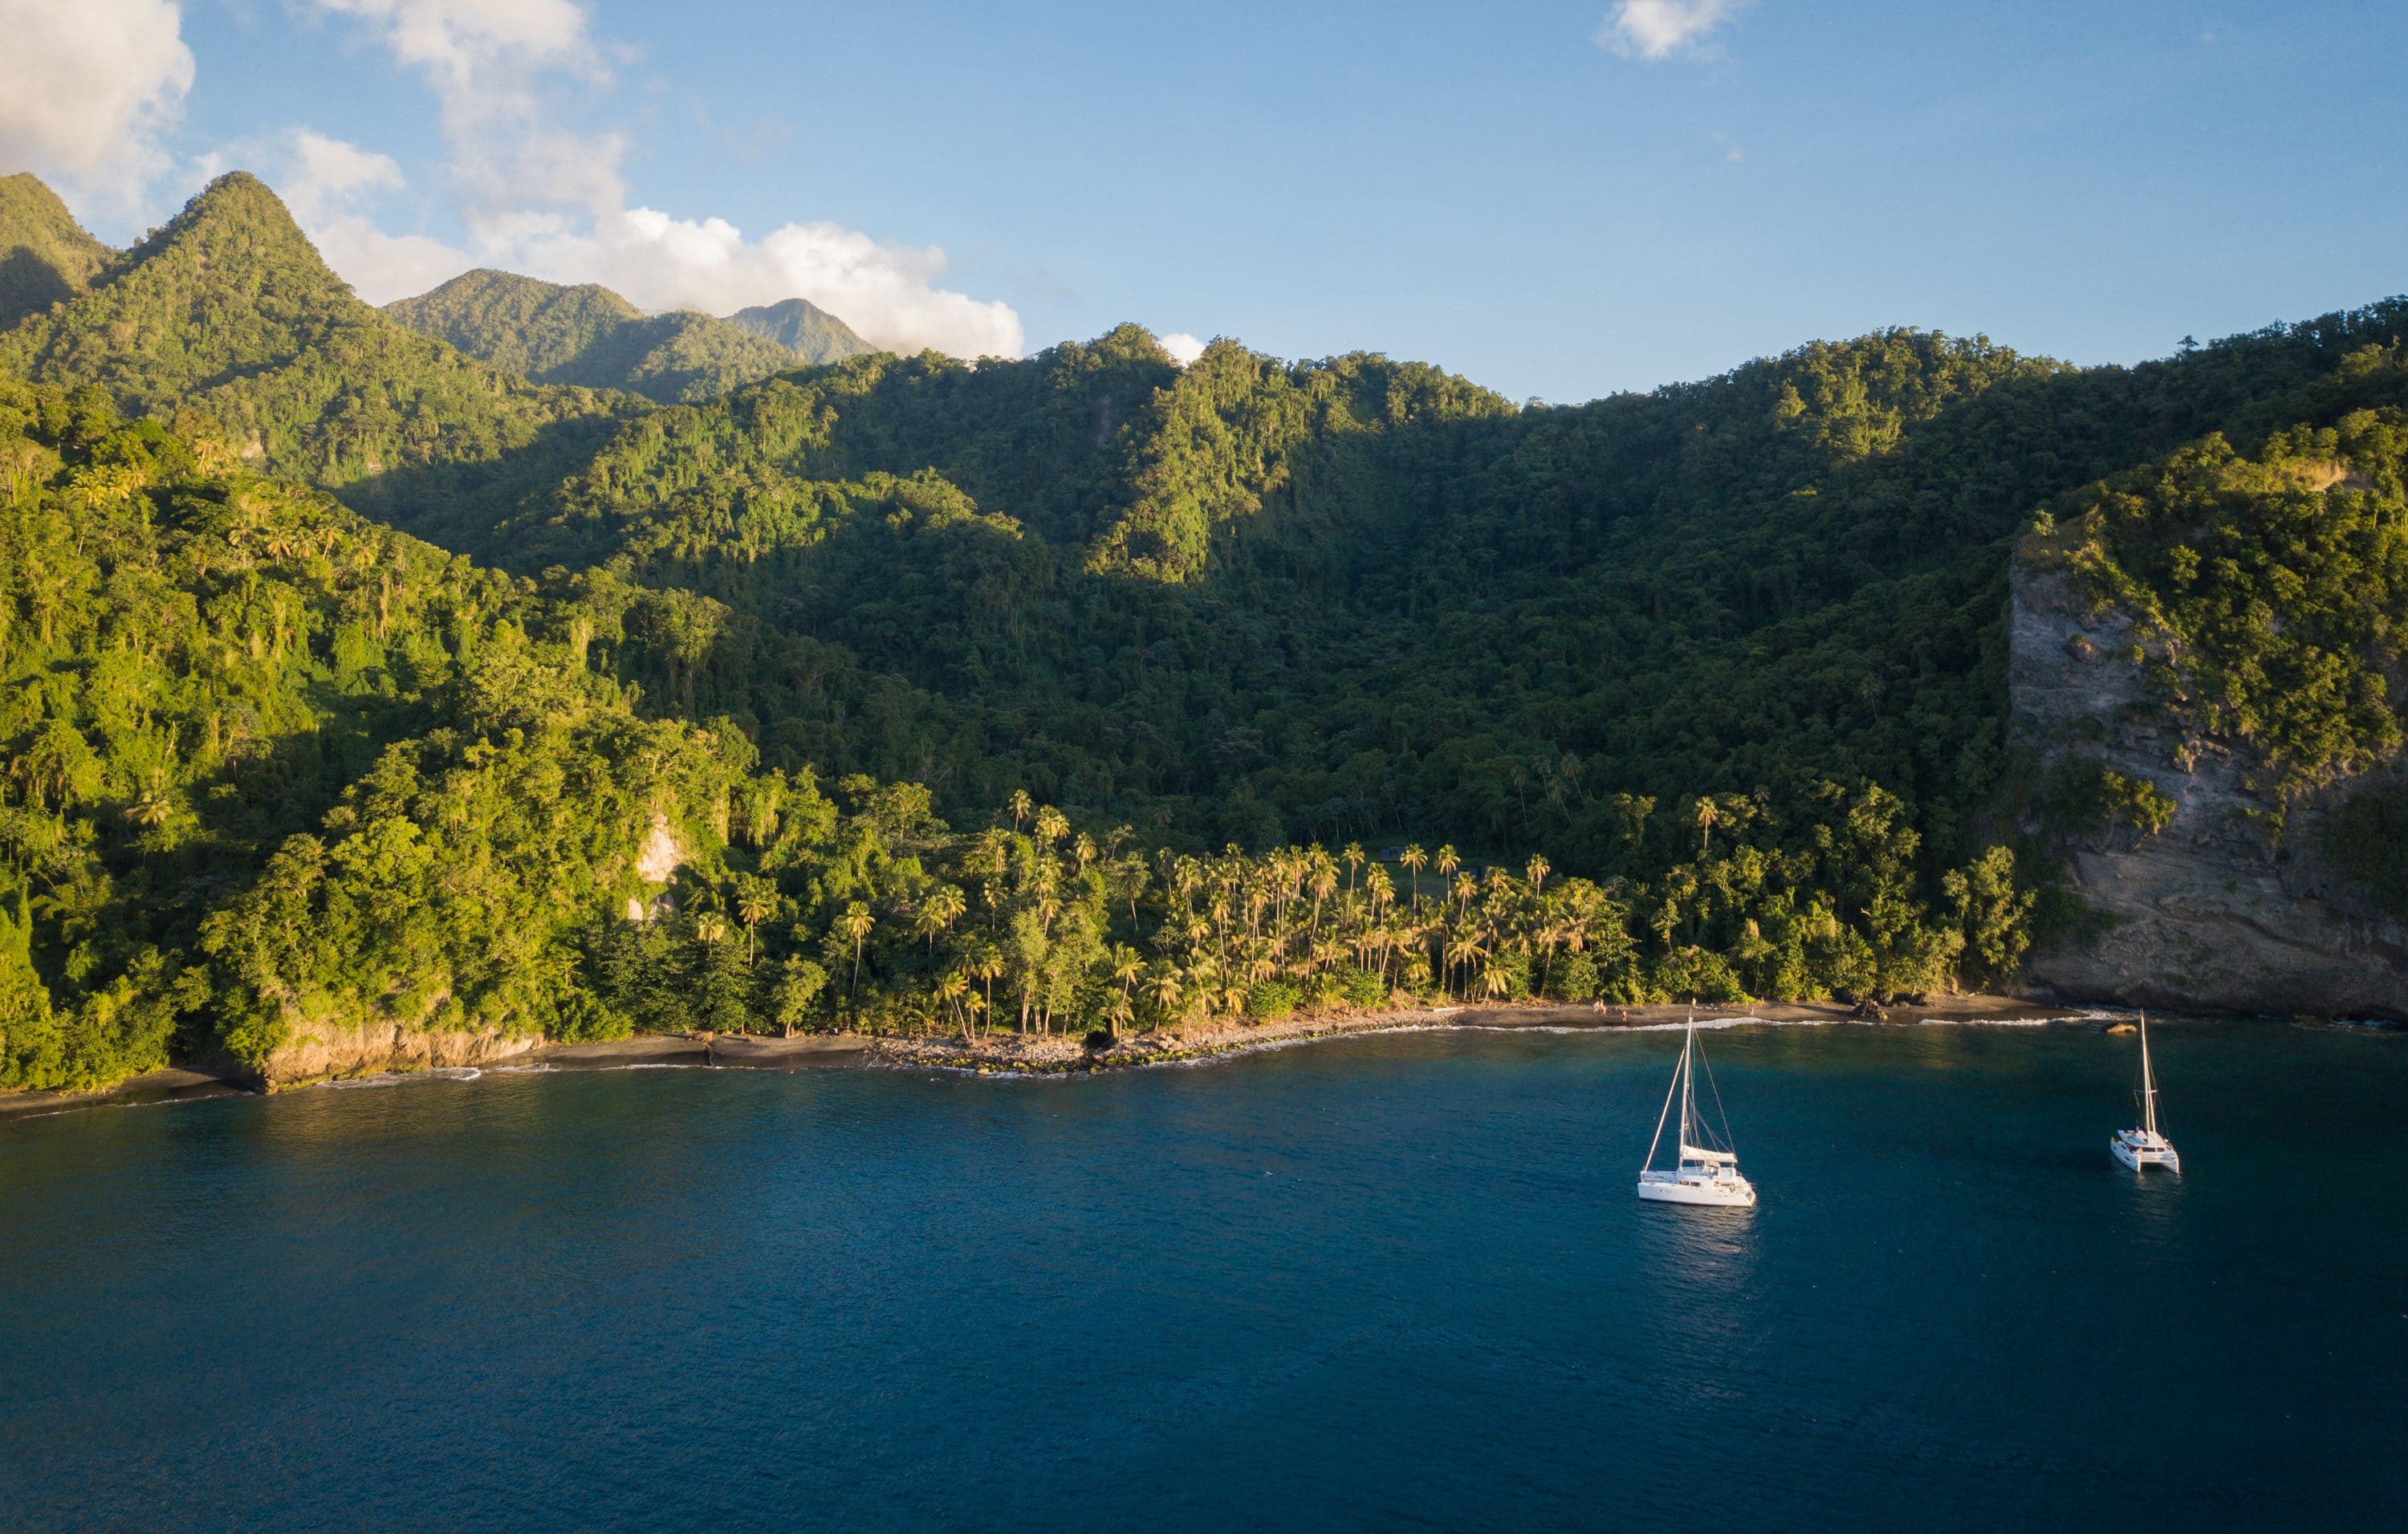 Karibik-Cruise 2017 – Martinique, Dominica, Guadeloupe, Antigua, Barbuda. Powered by Master Yachting & Dream Yacht Charter. | Credit: Flickr user Christian Lendl